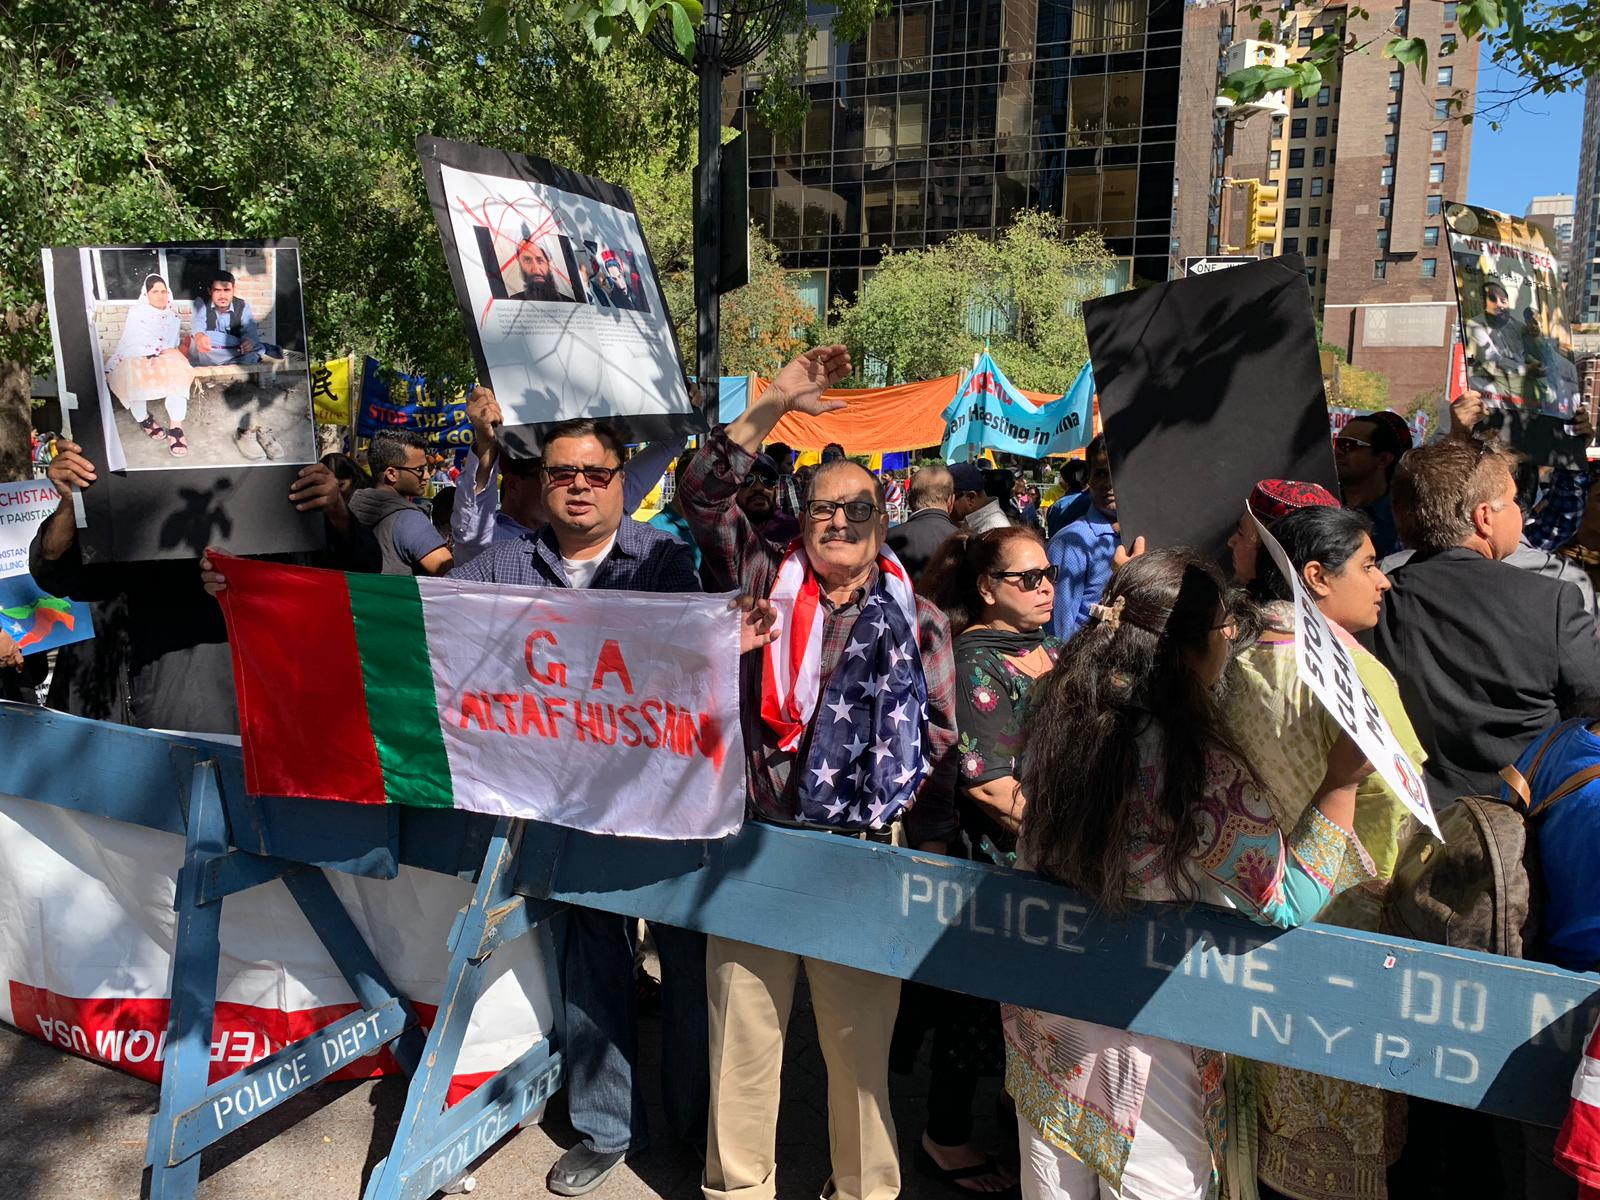 Participants raised slogans against Pakistan and demanded freedom.